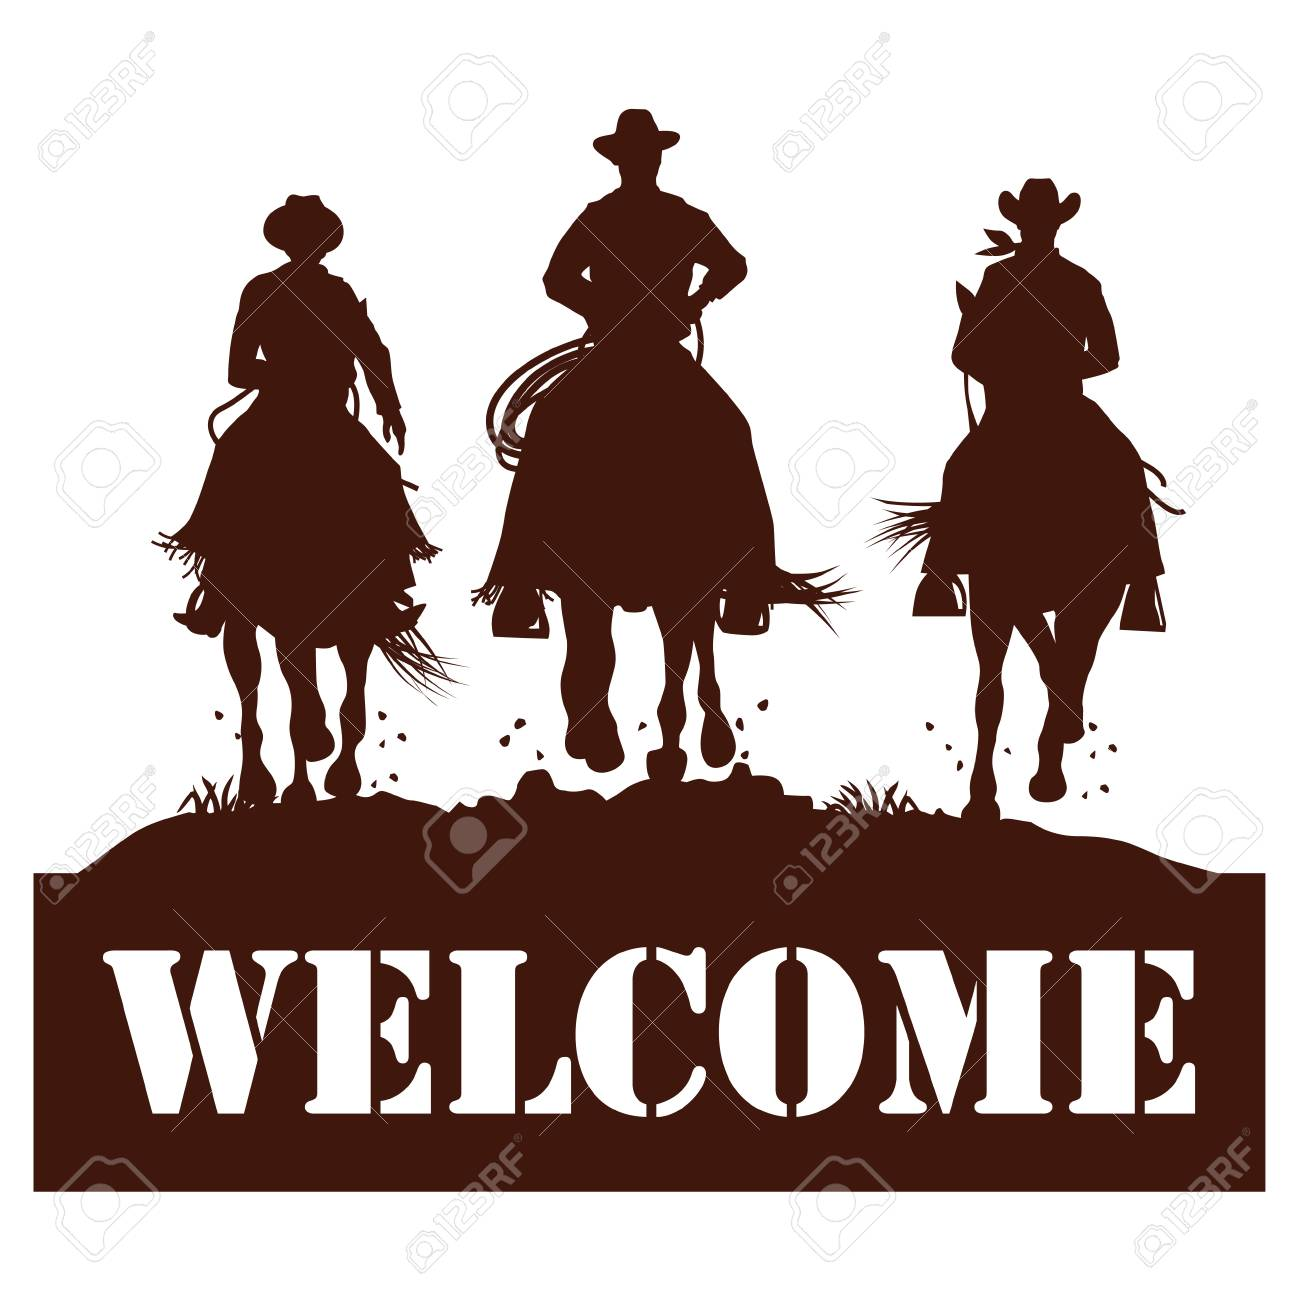 Welcome sign, Silhouette of cowboys riding horses, Vector.